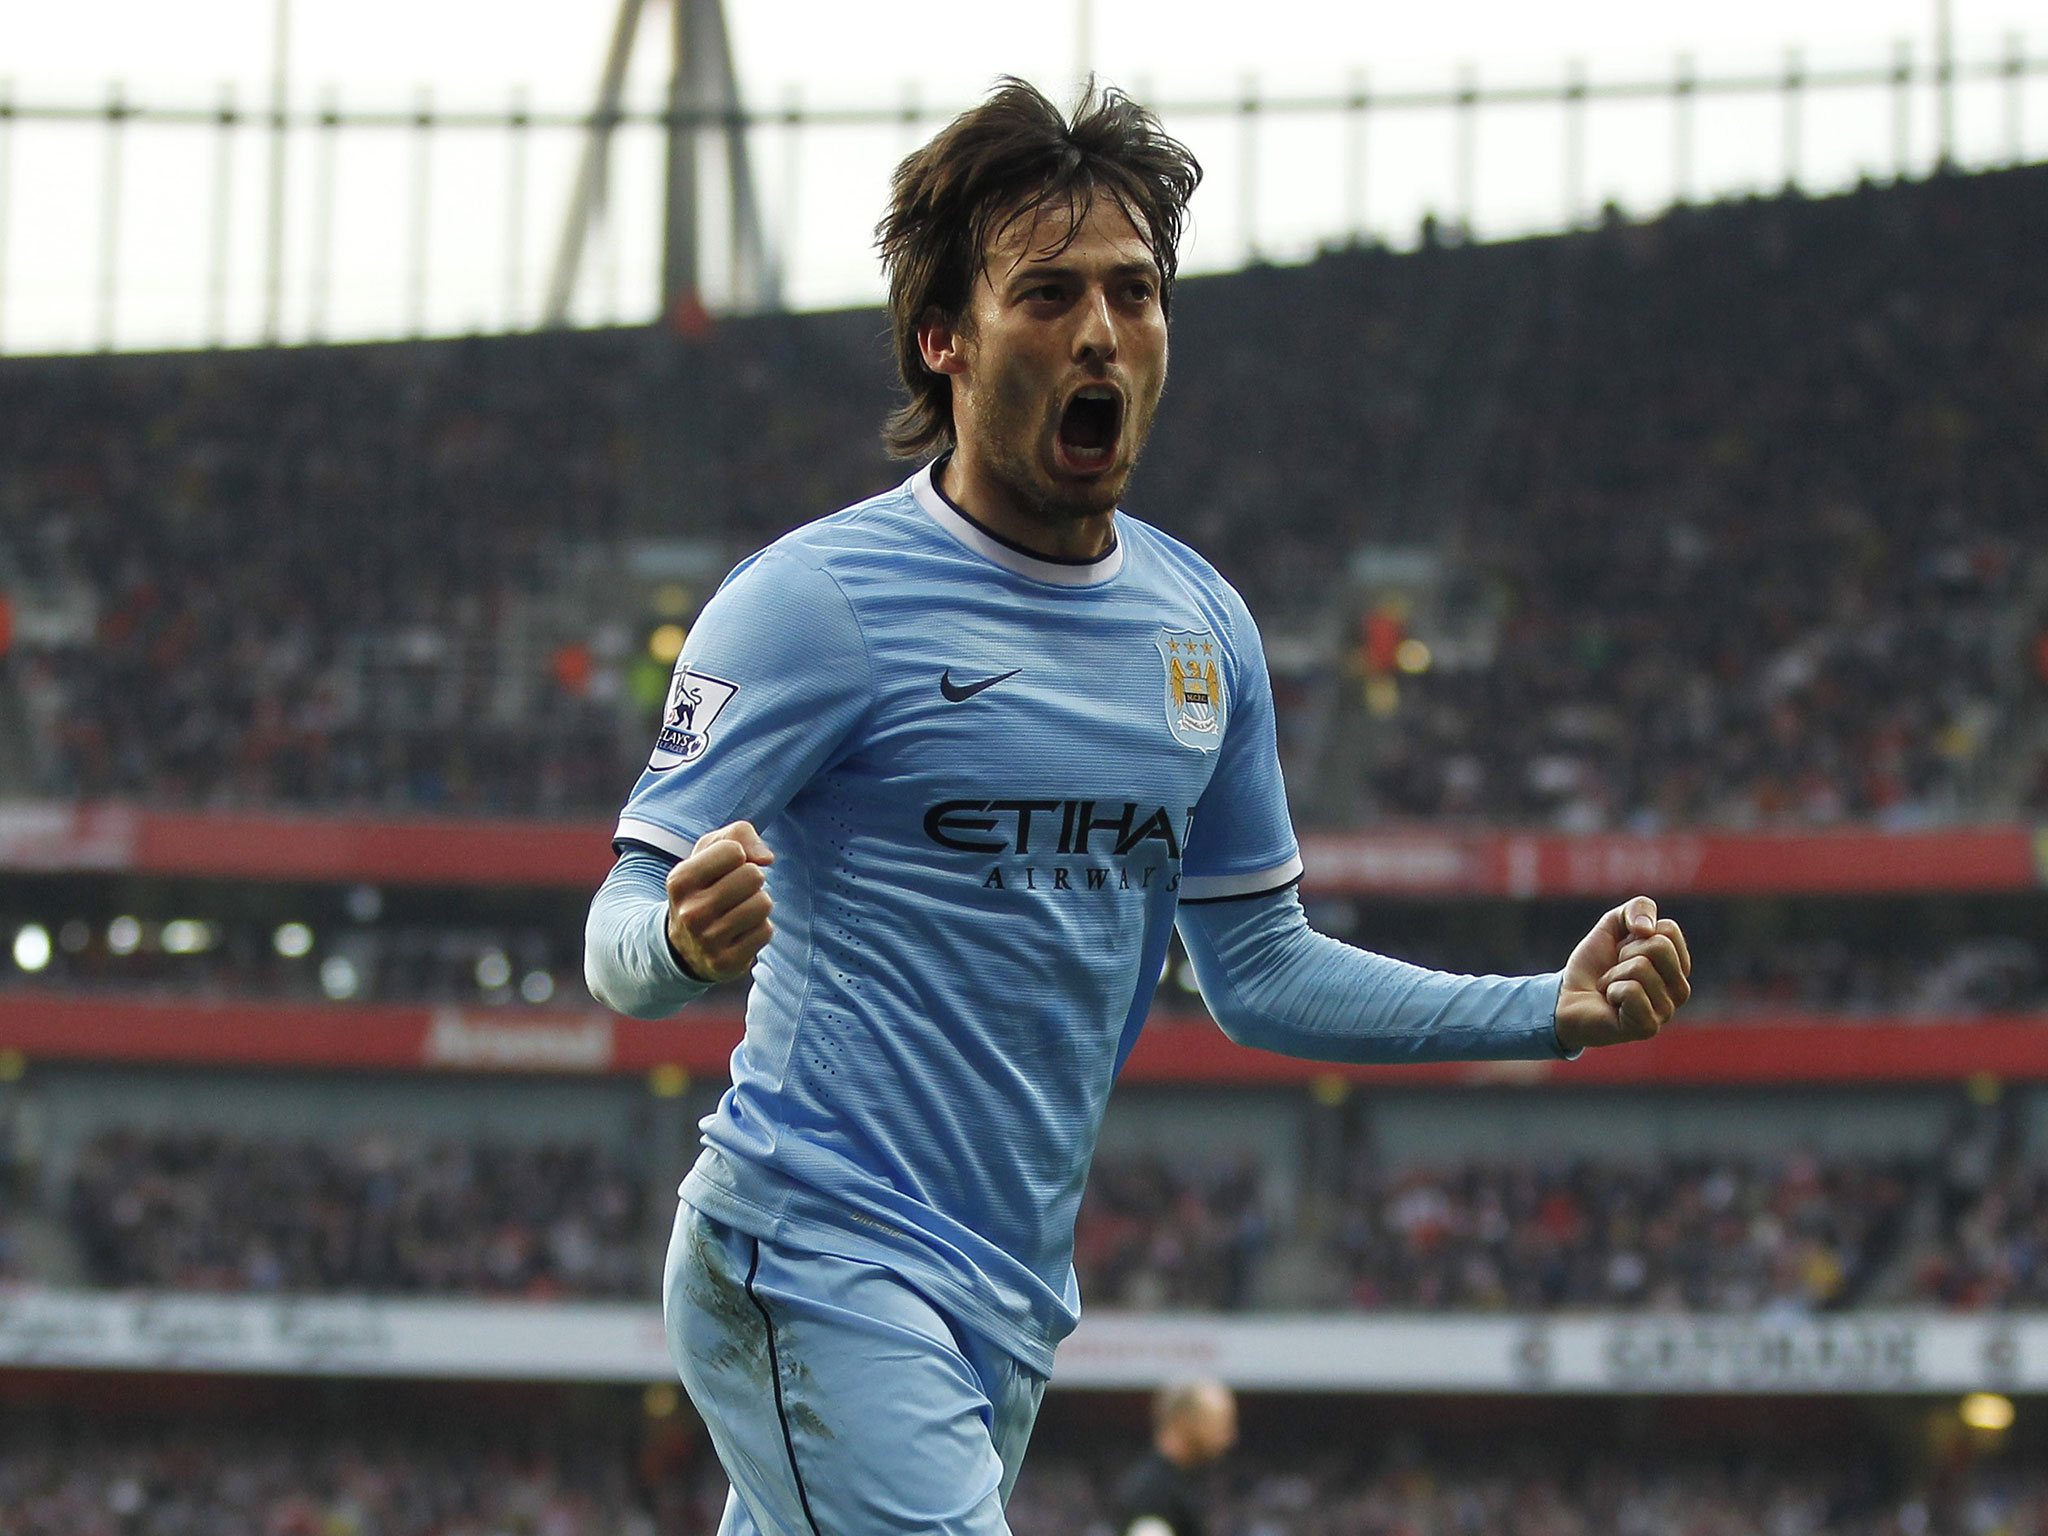 Amazing David Silva Pictures & Backgrounds